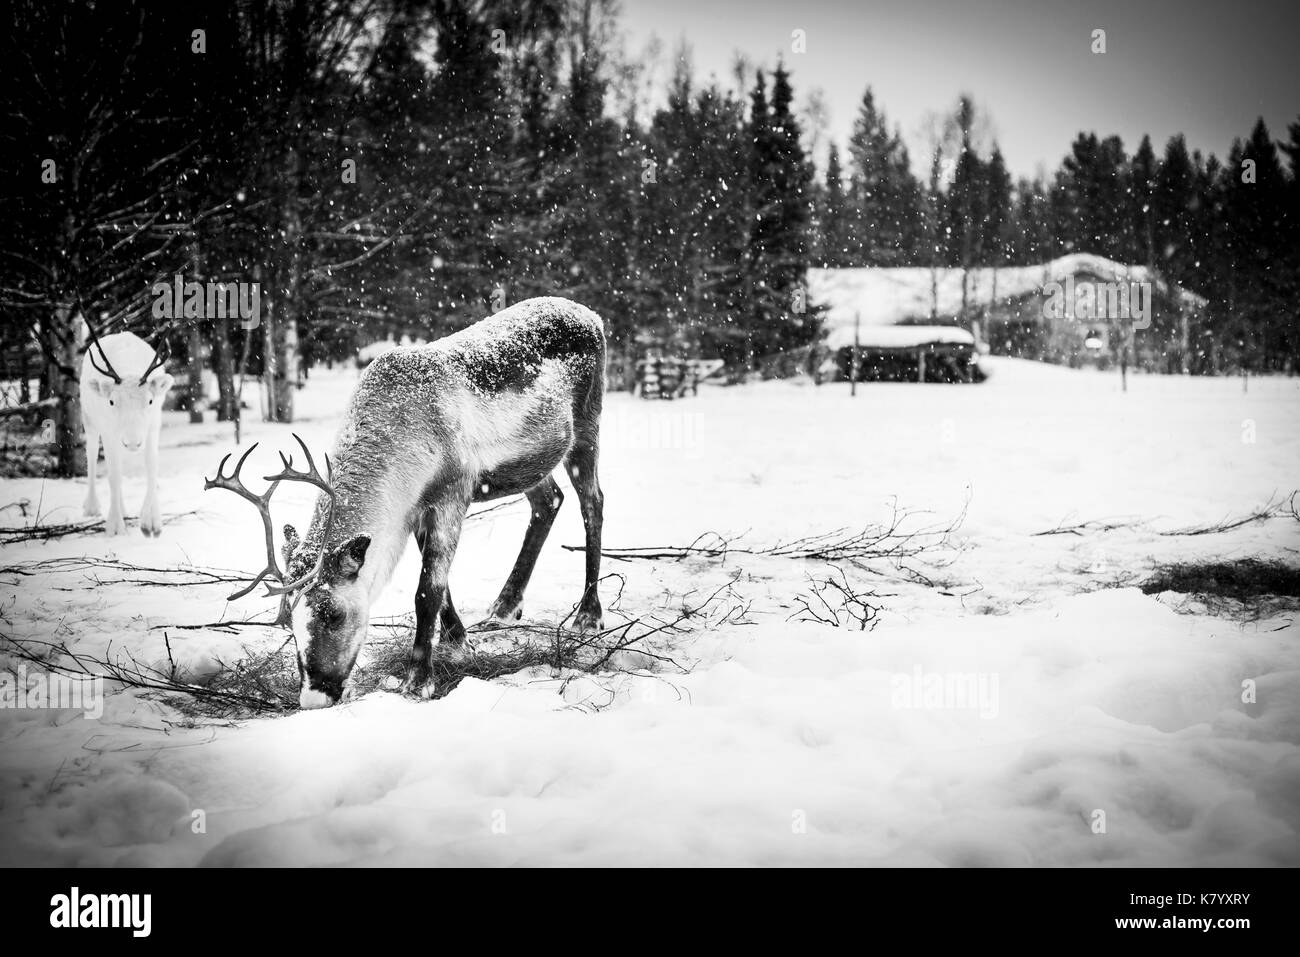 Reindeer feeding in the snow lapland finland stock image